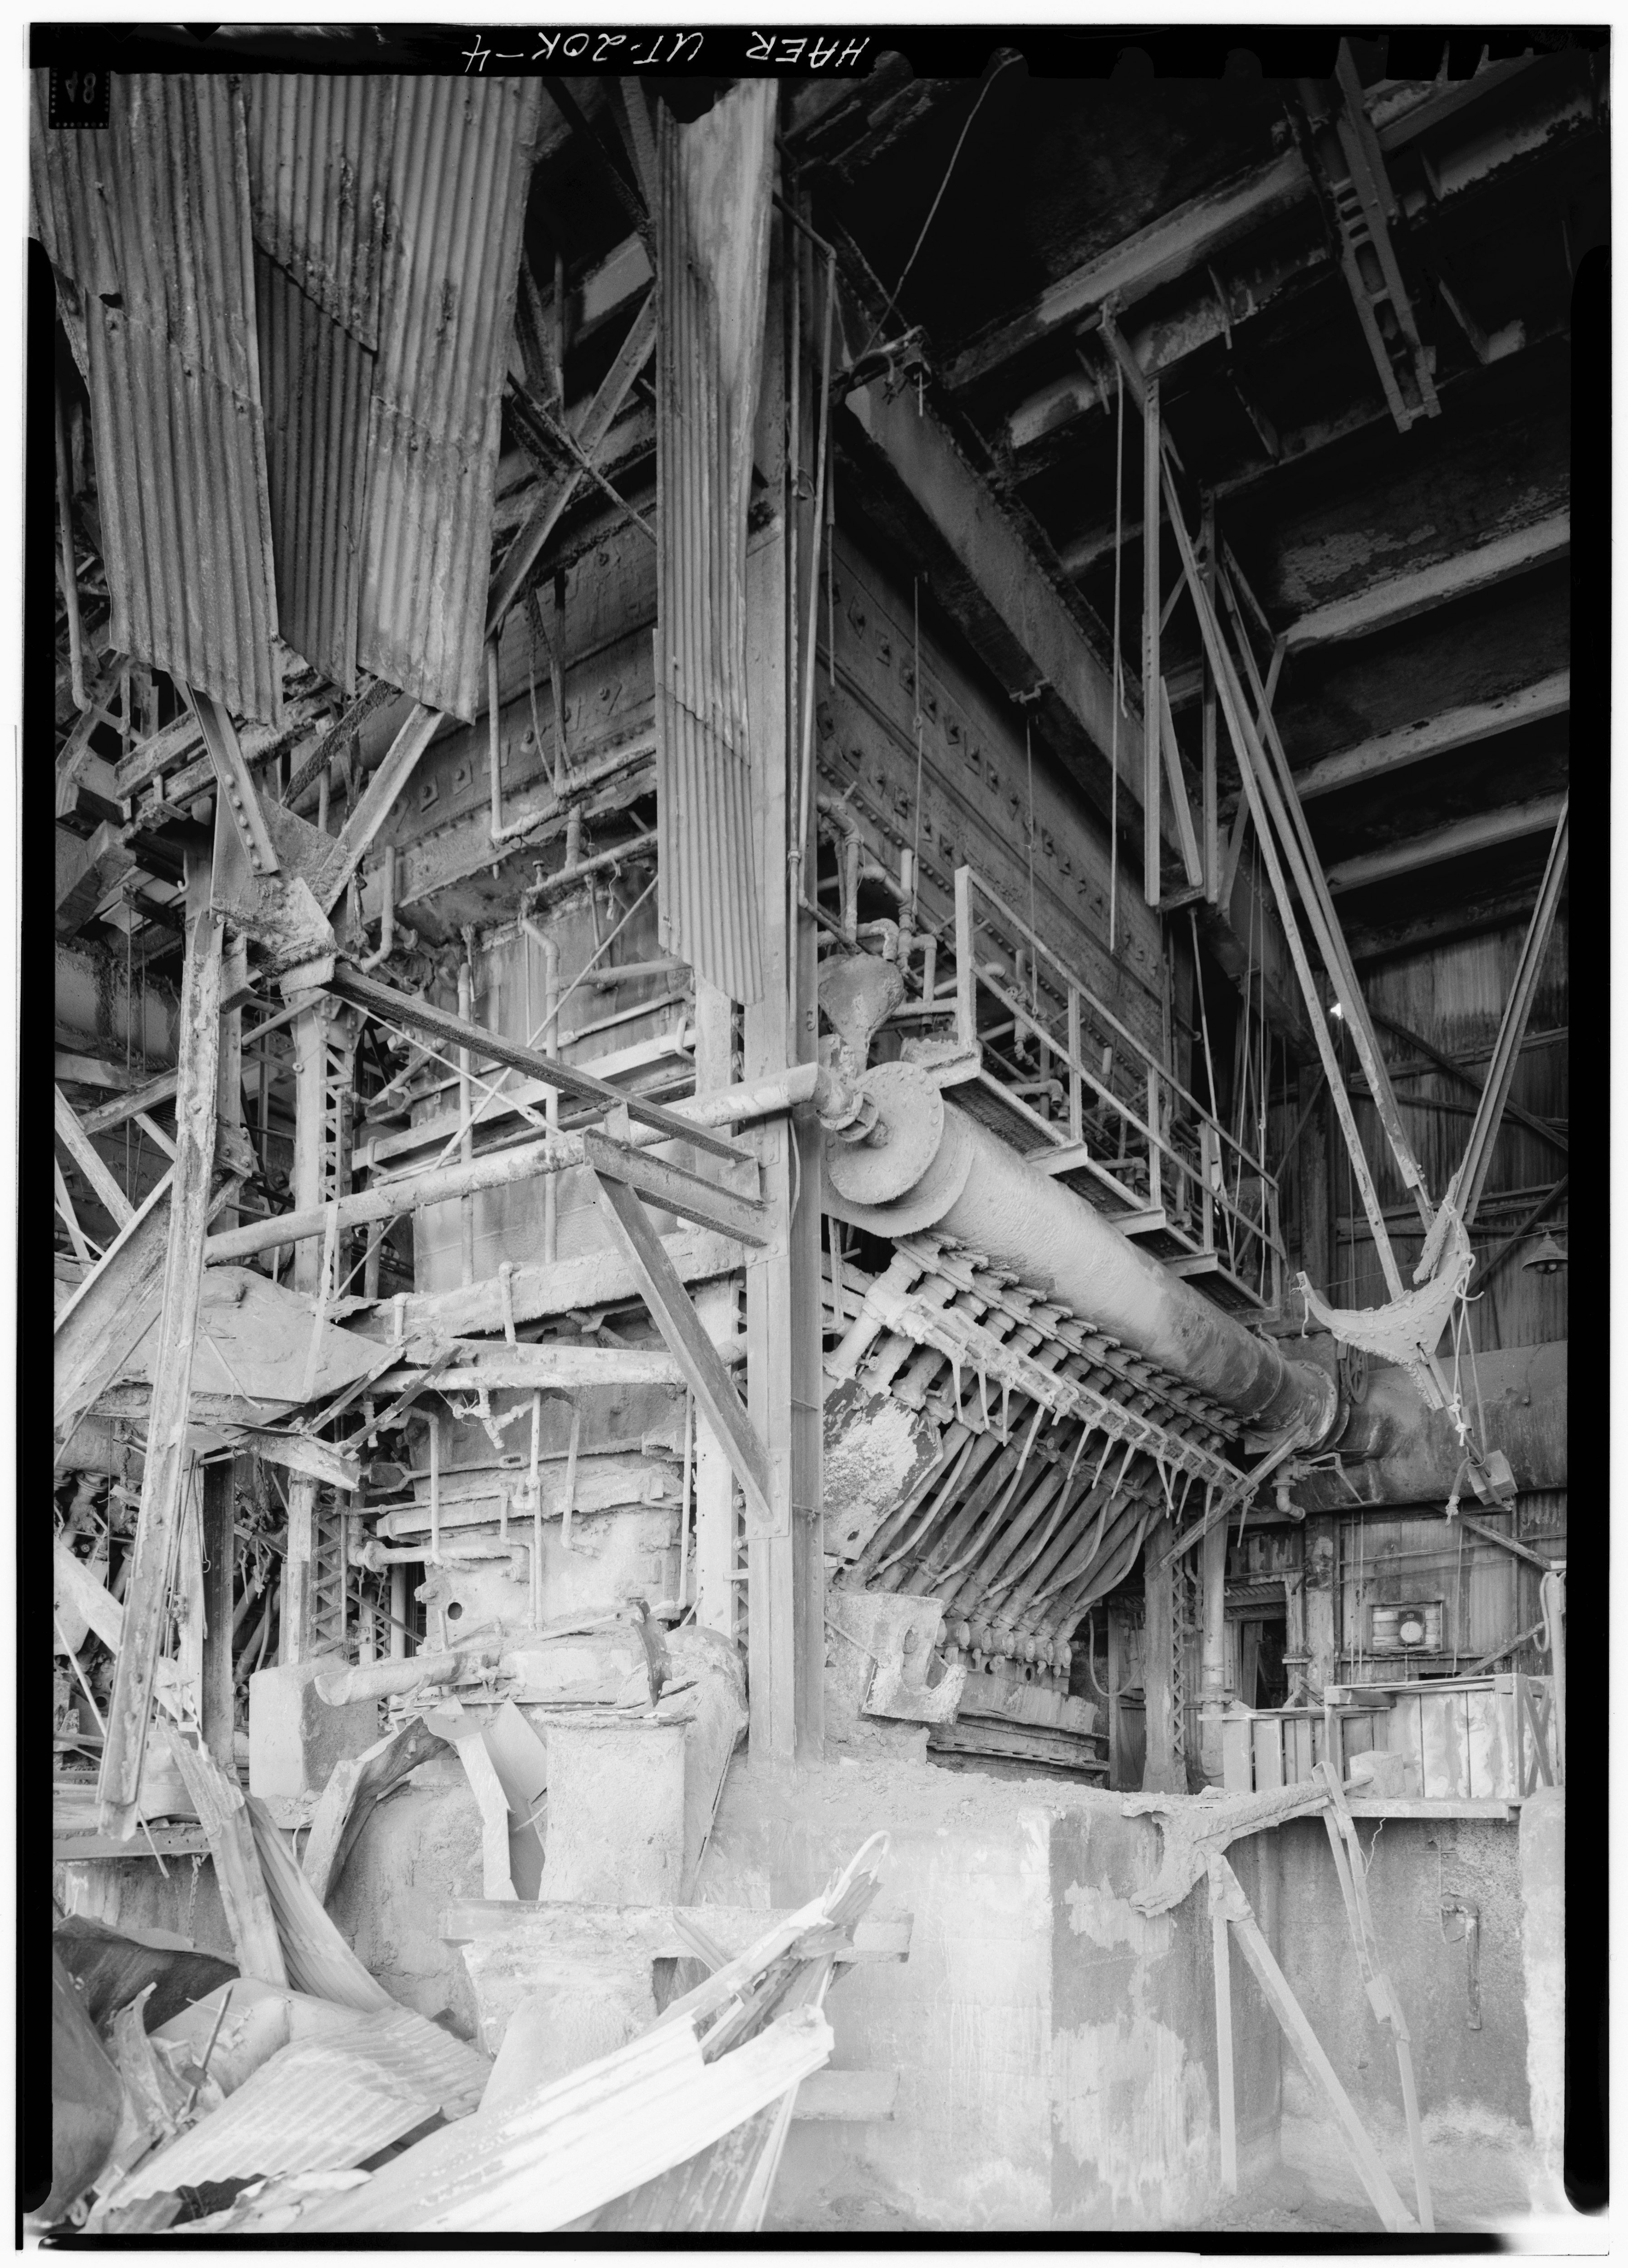 Blast Furnace Construction : File detail view of blast furnace showing tuyers